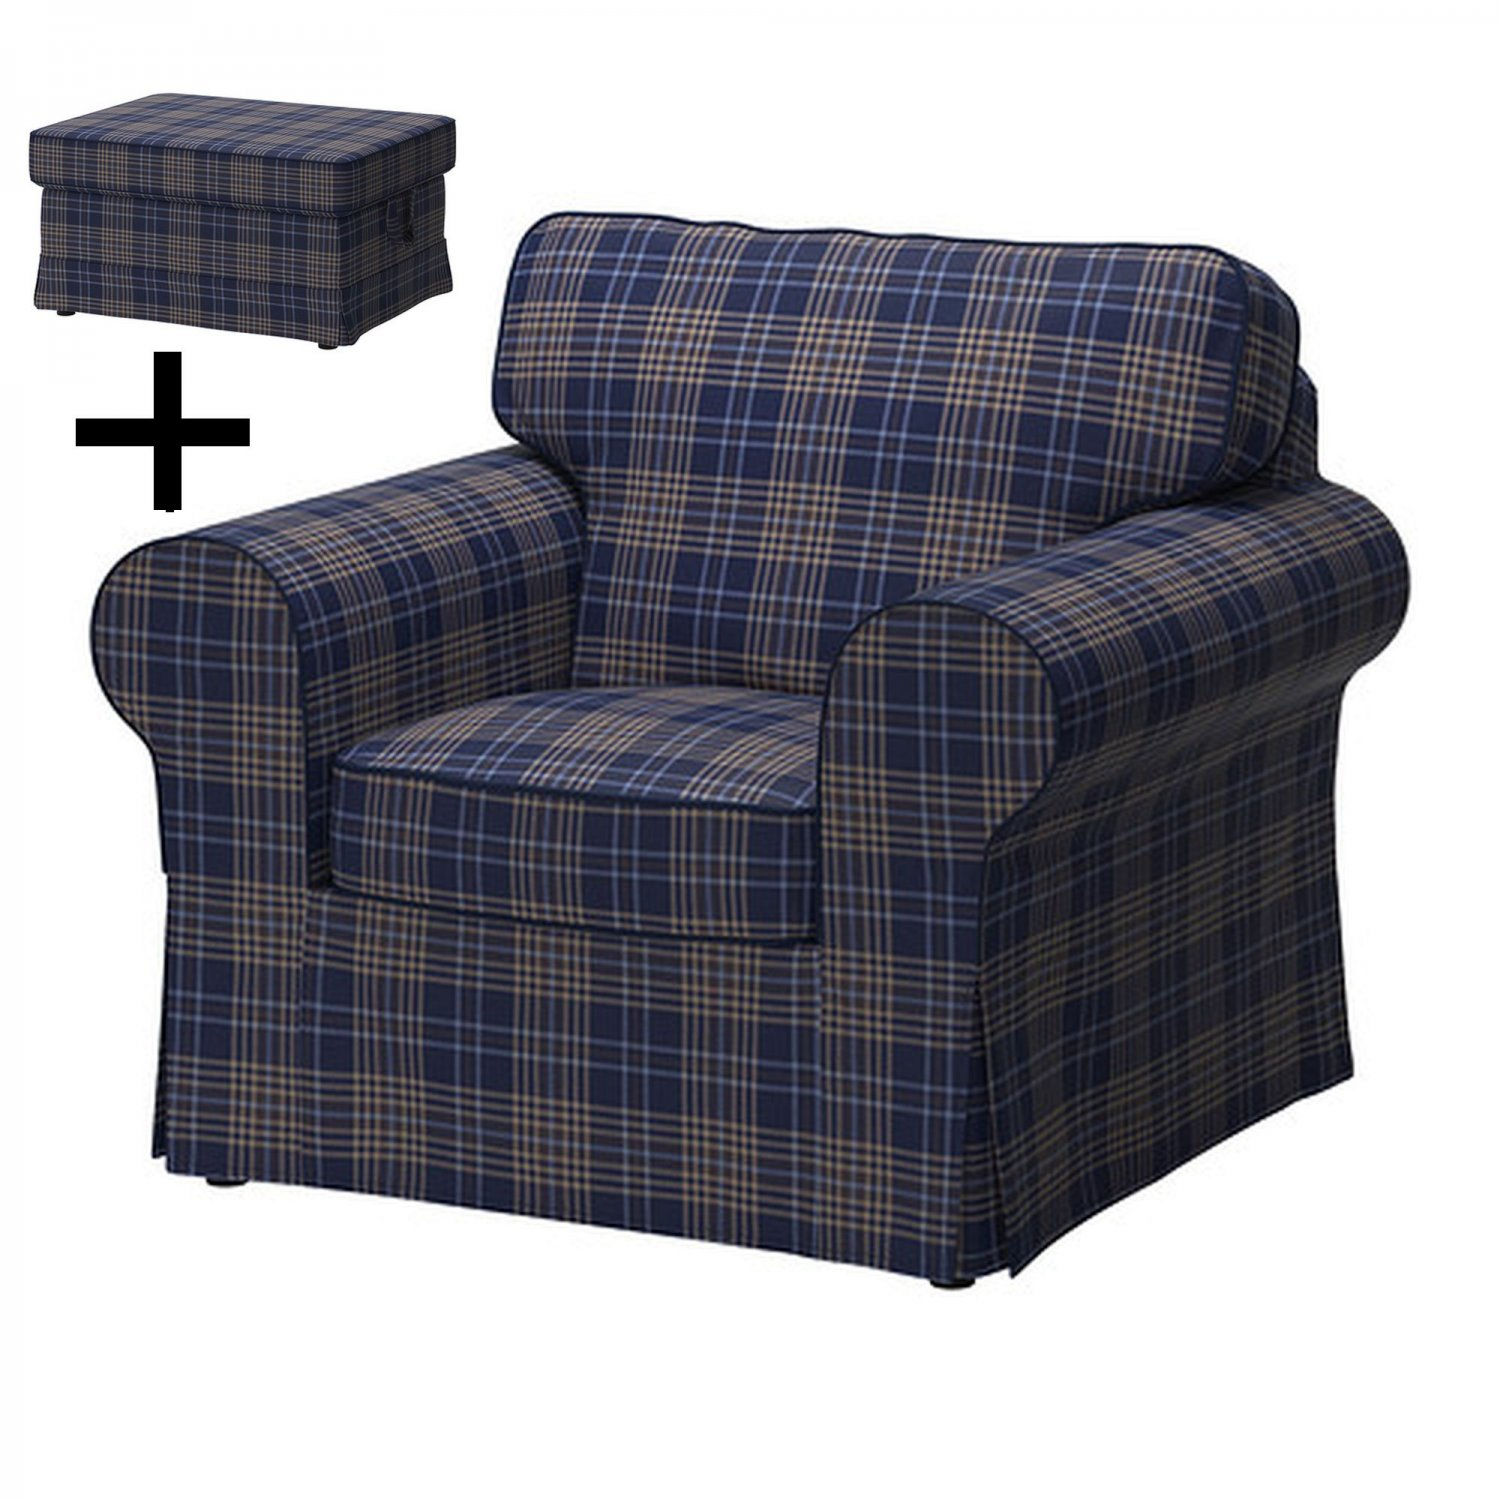 Ikea ektorp armchair and footstool cover chair ottoman for Chair and footstool